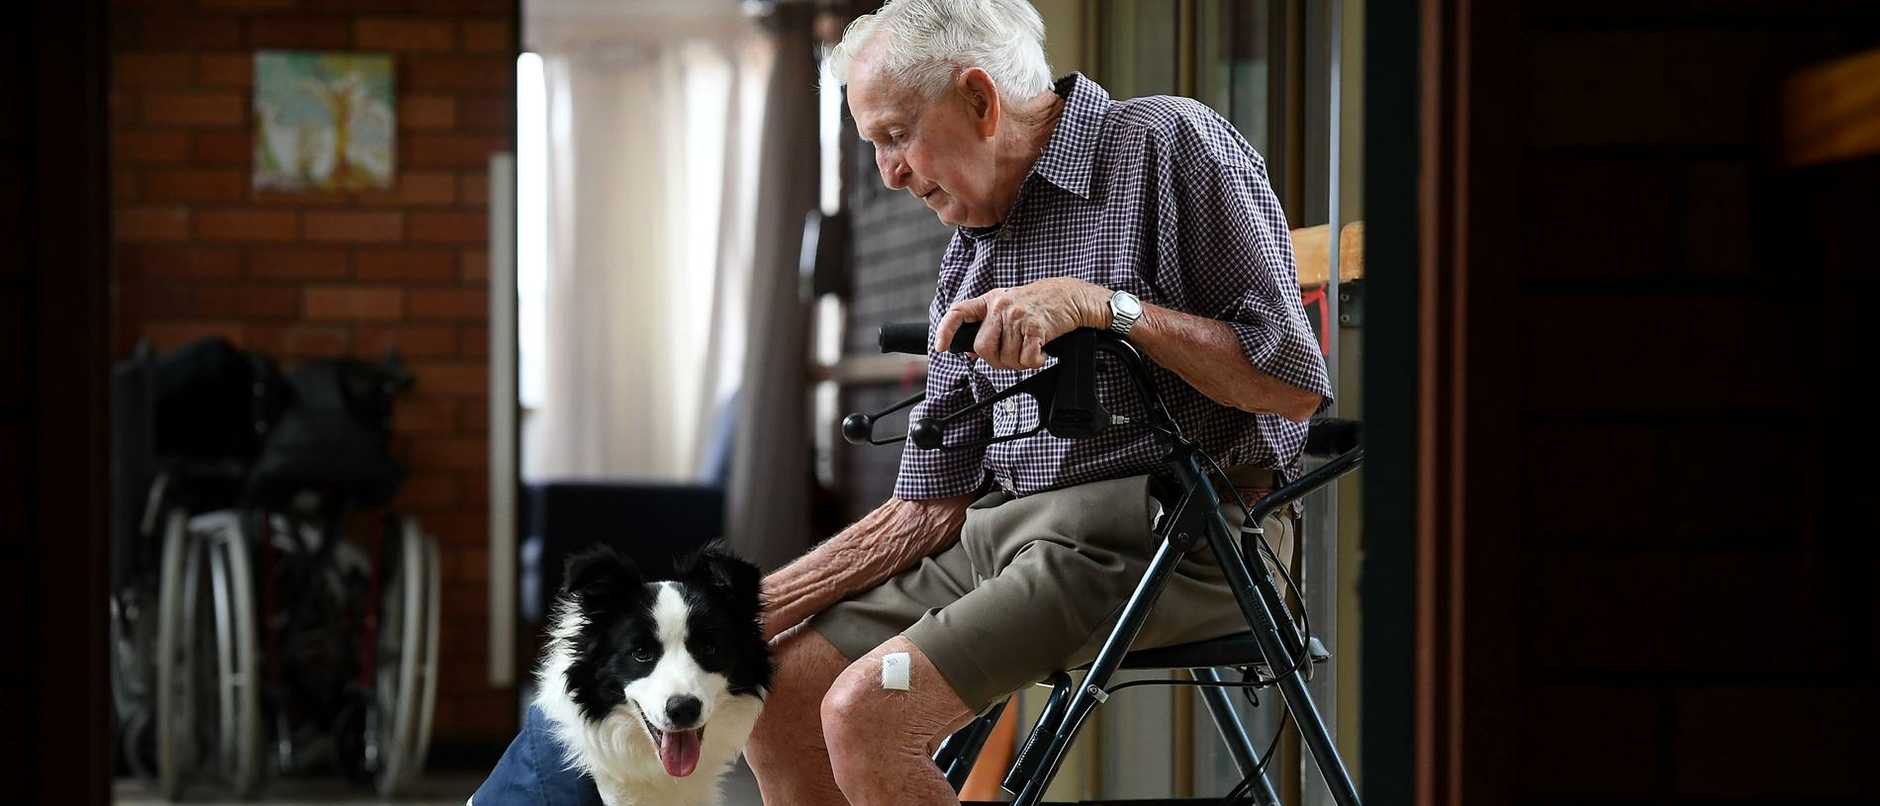 Molly is a part of Creature Comforts, a new wellbeing program run by not for profit aged care provider Whiddon.  For many residents like Ray Shephard, Molly's company means the world.